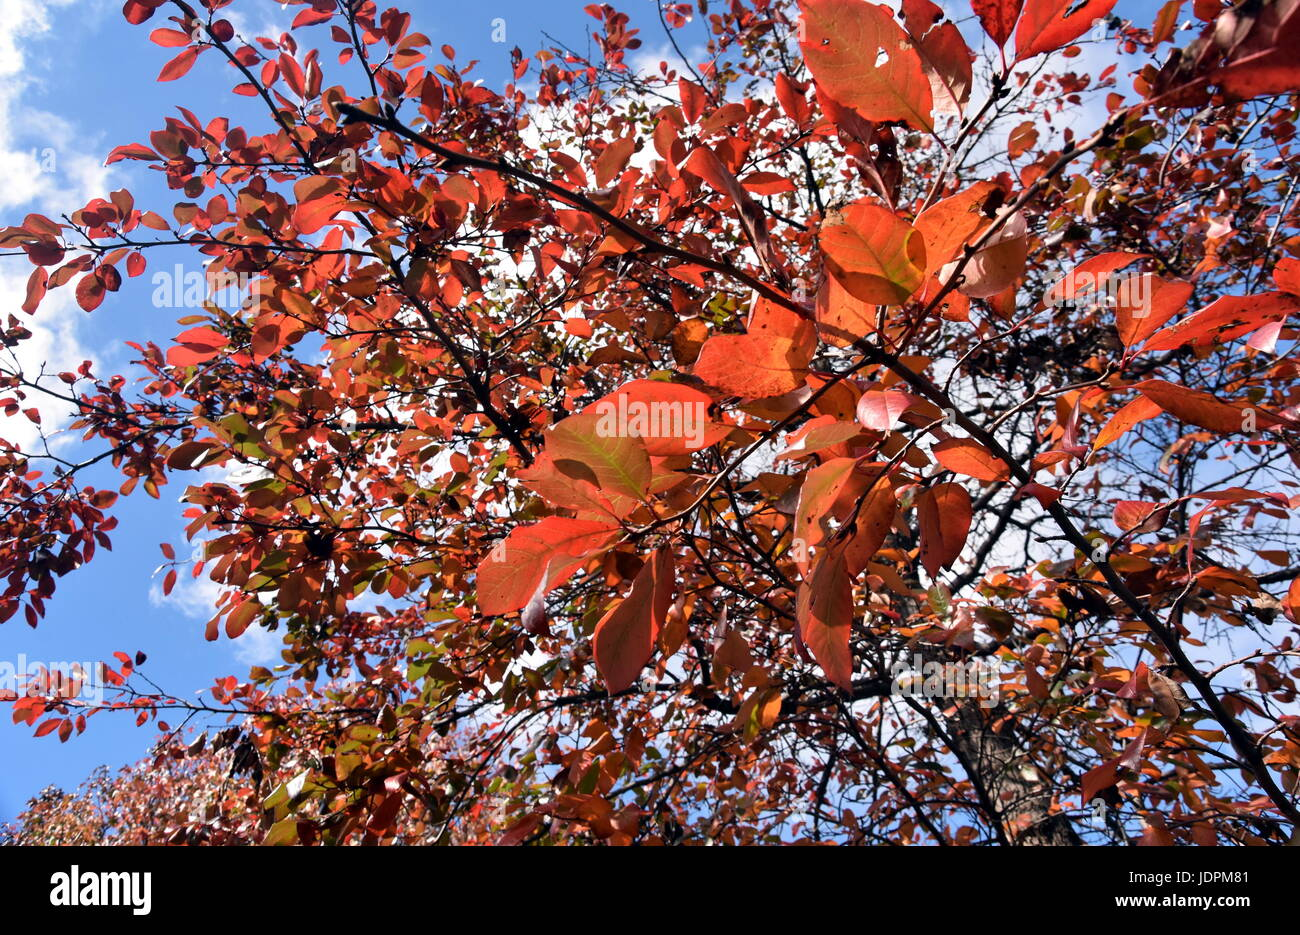 Autumn orange tree tops against blue sky in vintage tones. Natural view of autumn trees. Autumn tree against sky - Stock Image